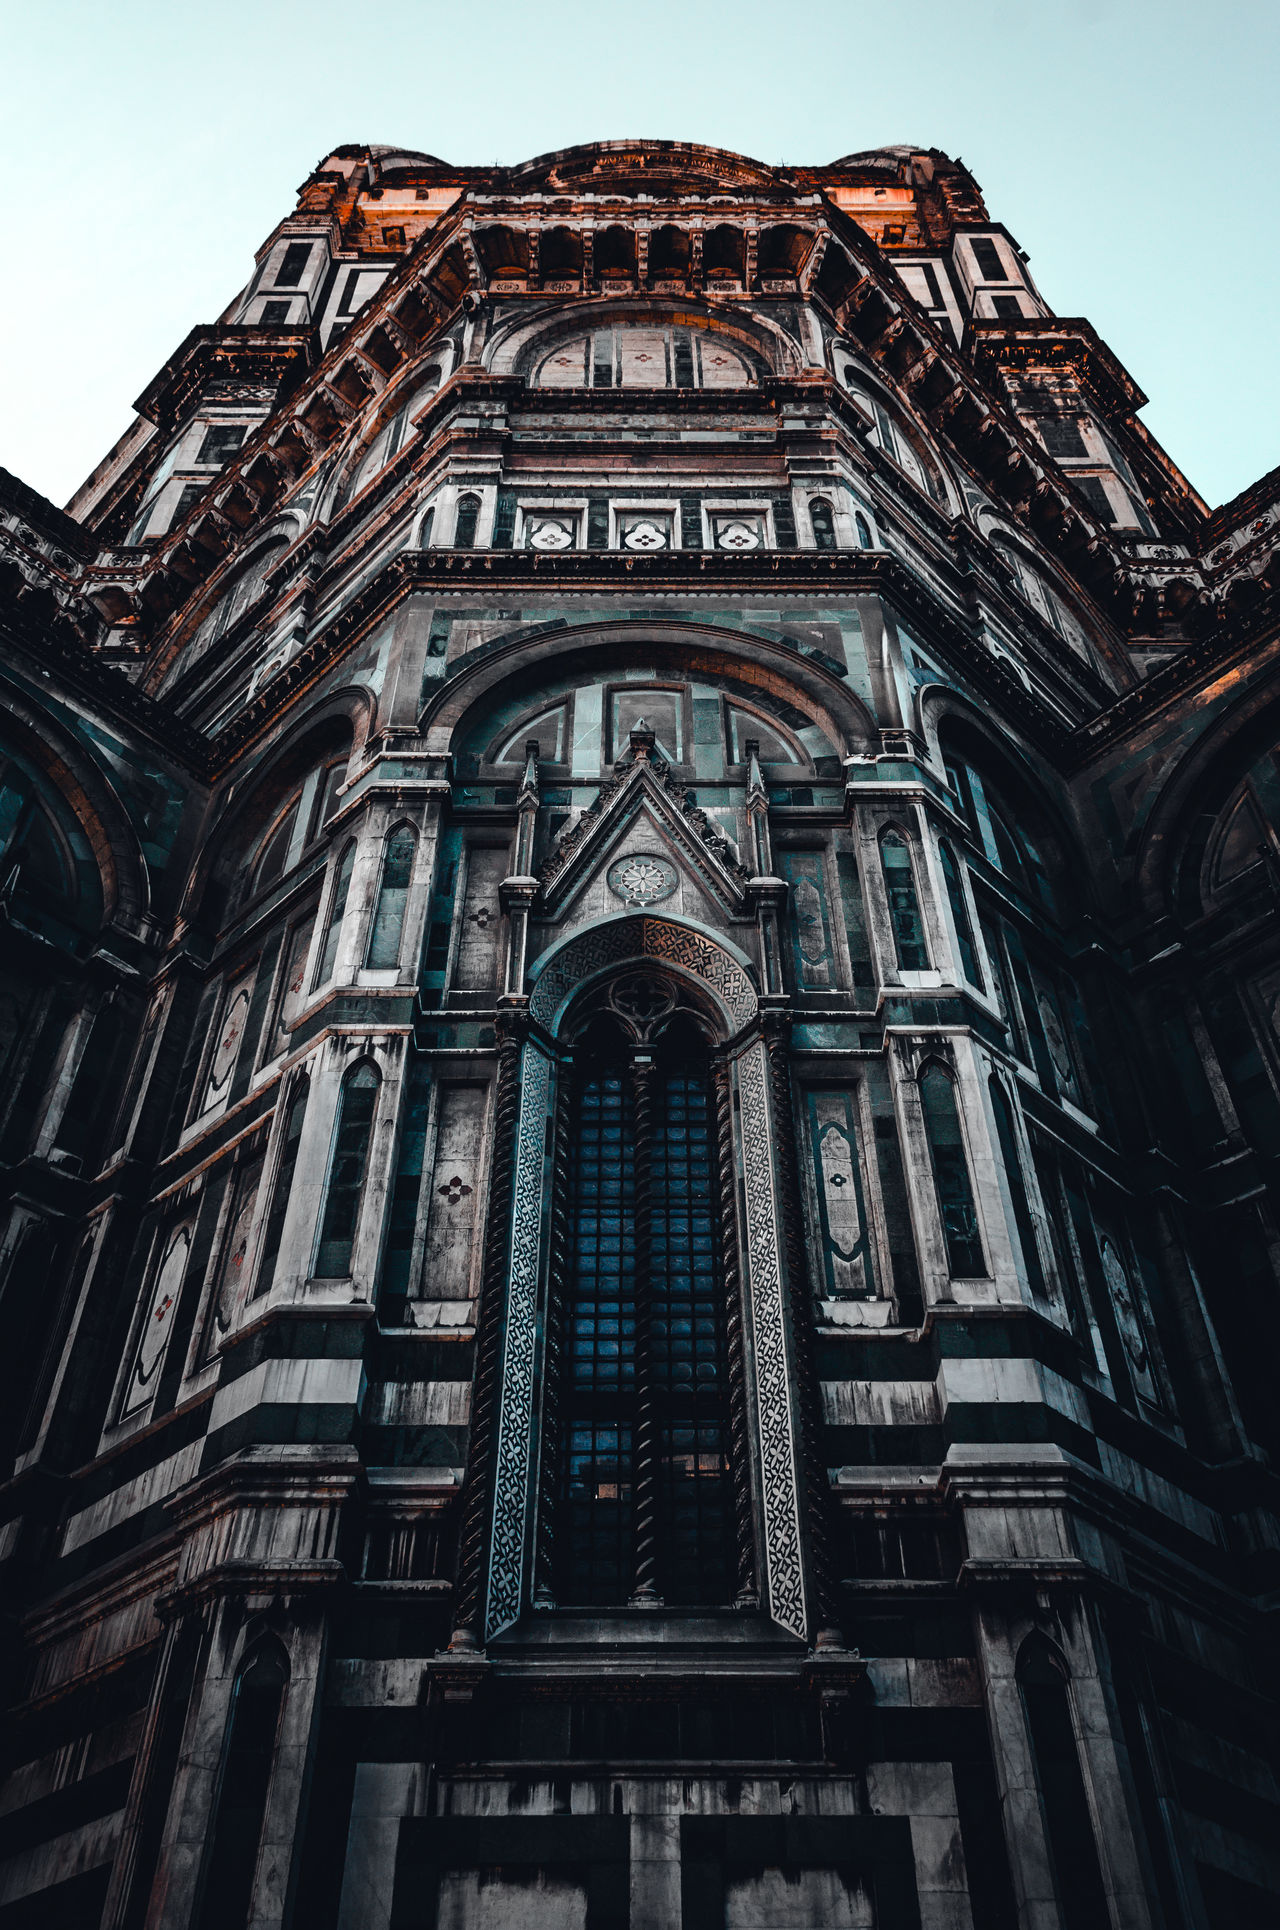 EyeEm Low Angle View Architecture No People Building Exterior Sky Day Outdoors Eye4photography  City Exploring EyeEm Gallery EyeEmBestEdits Old-fashioned EyeEm Best Shots Explore Architecture Abstract Victorian Houses Symmetry EyeEm Best Edits Colorful Colors Cool Streetphotography